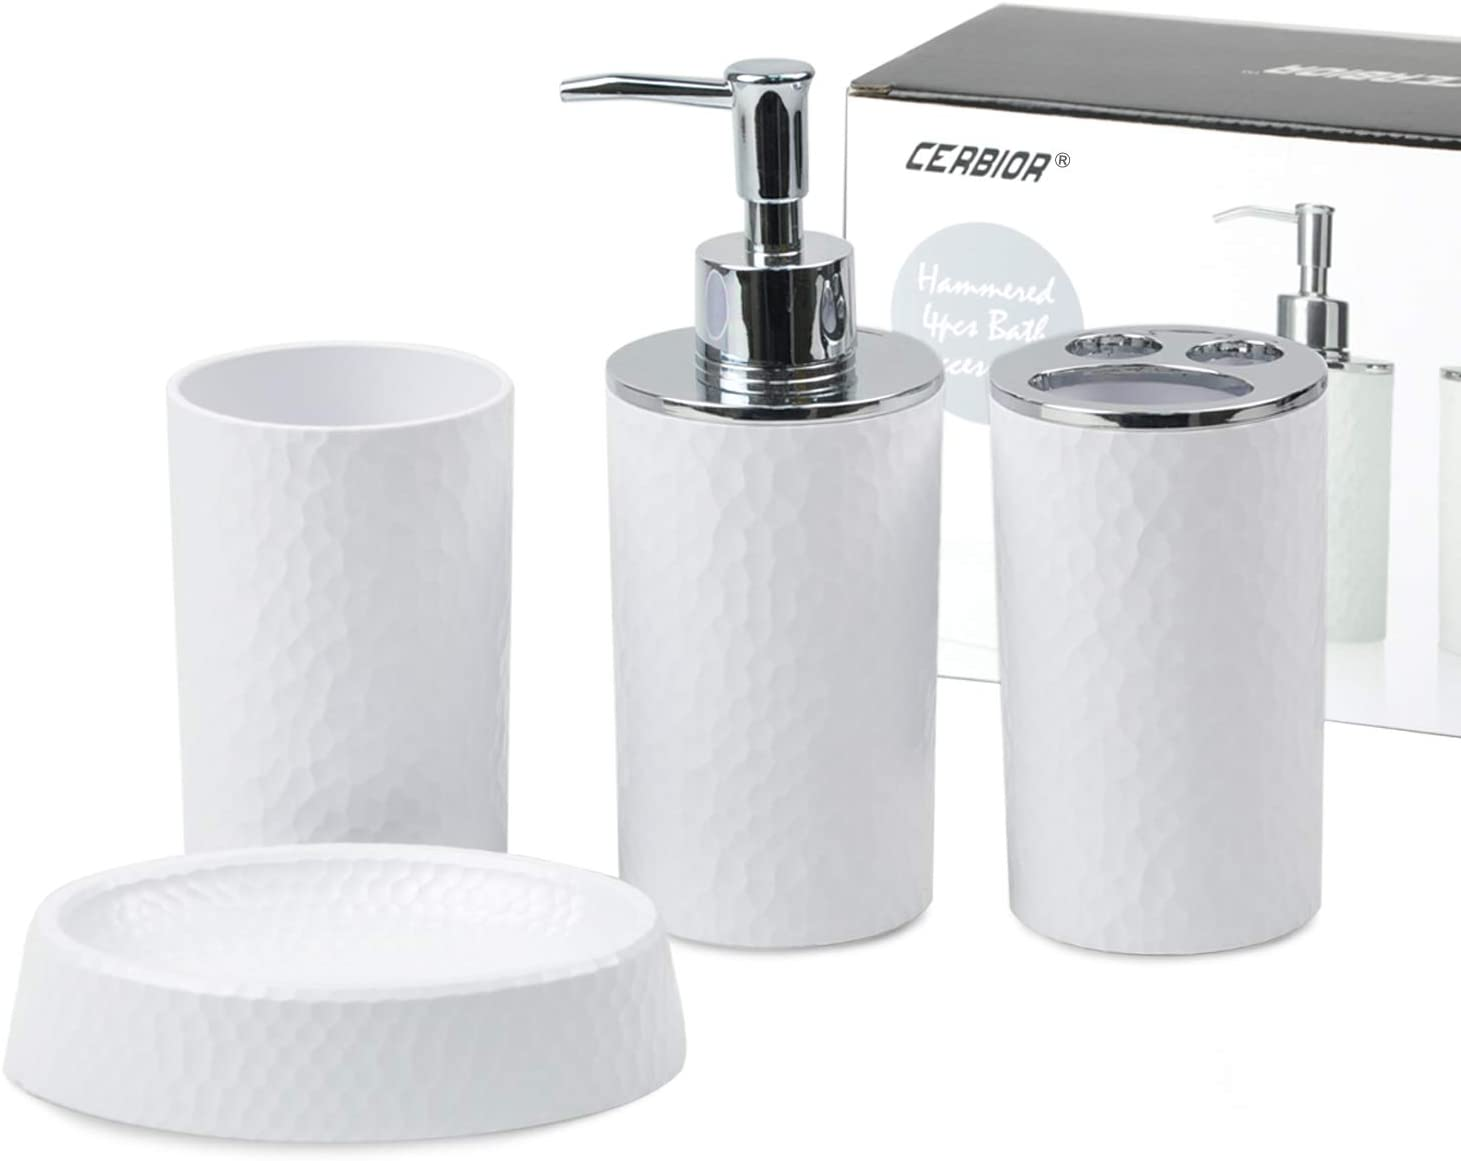 CERBIOR Bathroom Accessories Set 4 Piece Bath Ensemble Includes Soap Dispenser, Toothbrush Holder, Toothbrush Cup, Soap Dish for Decorative Countertop and Housewarming Gift, White: Home & Kitchen